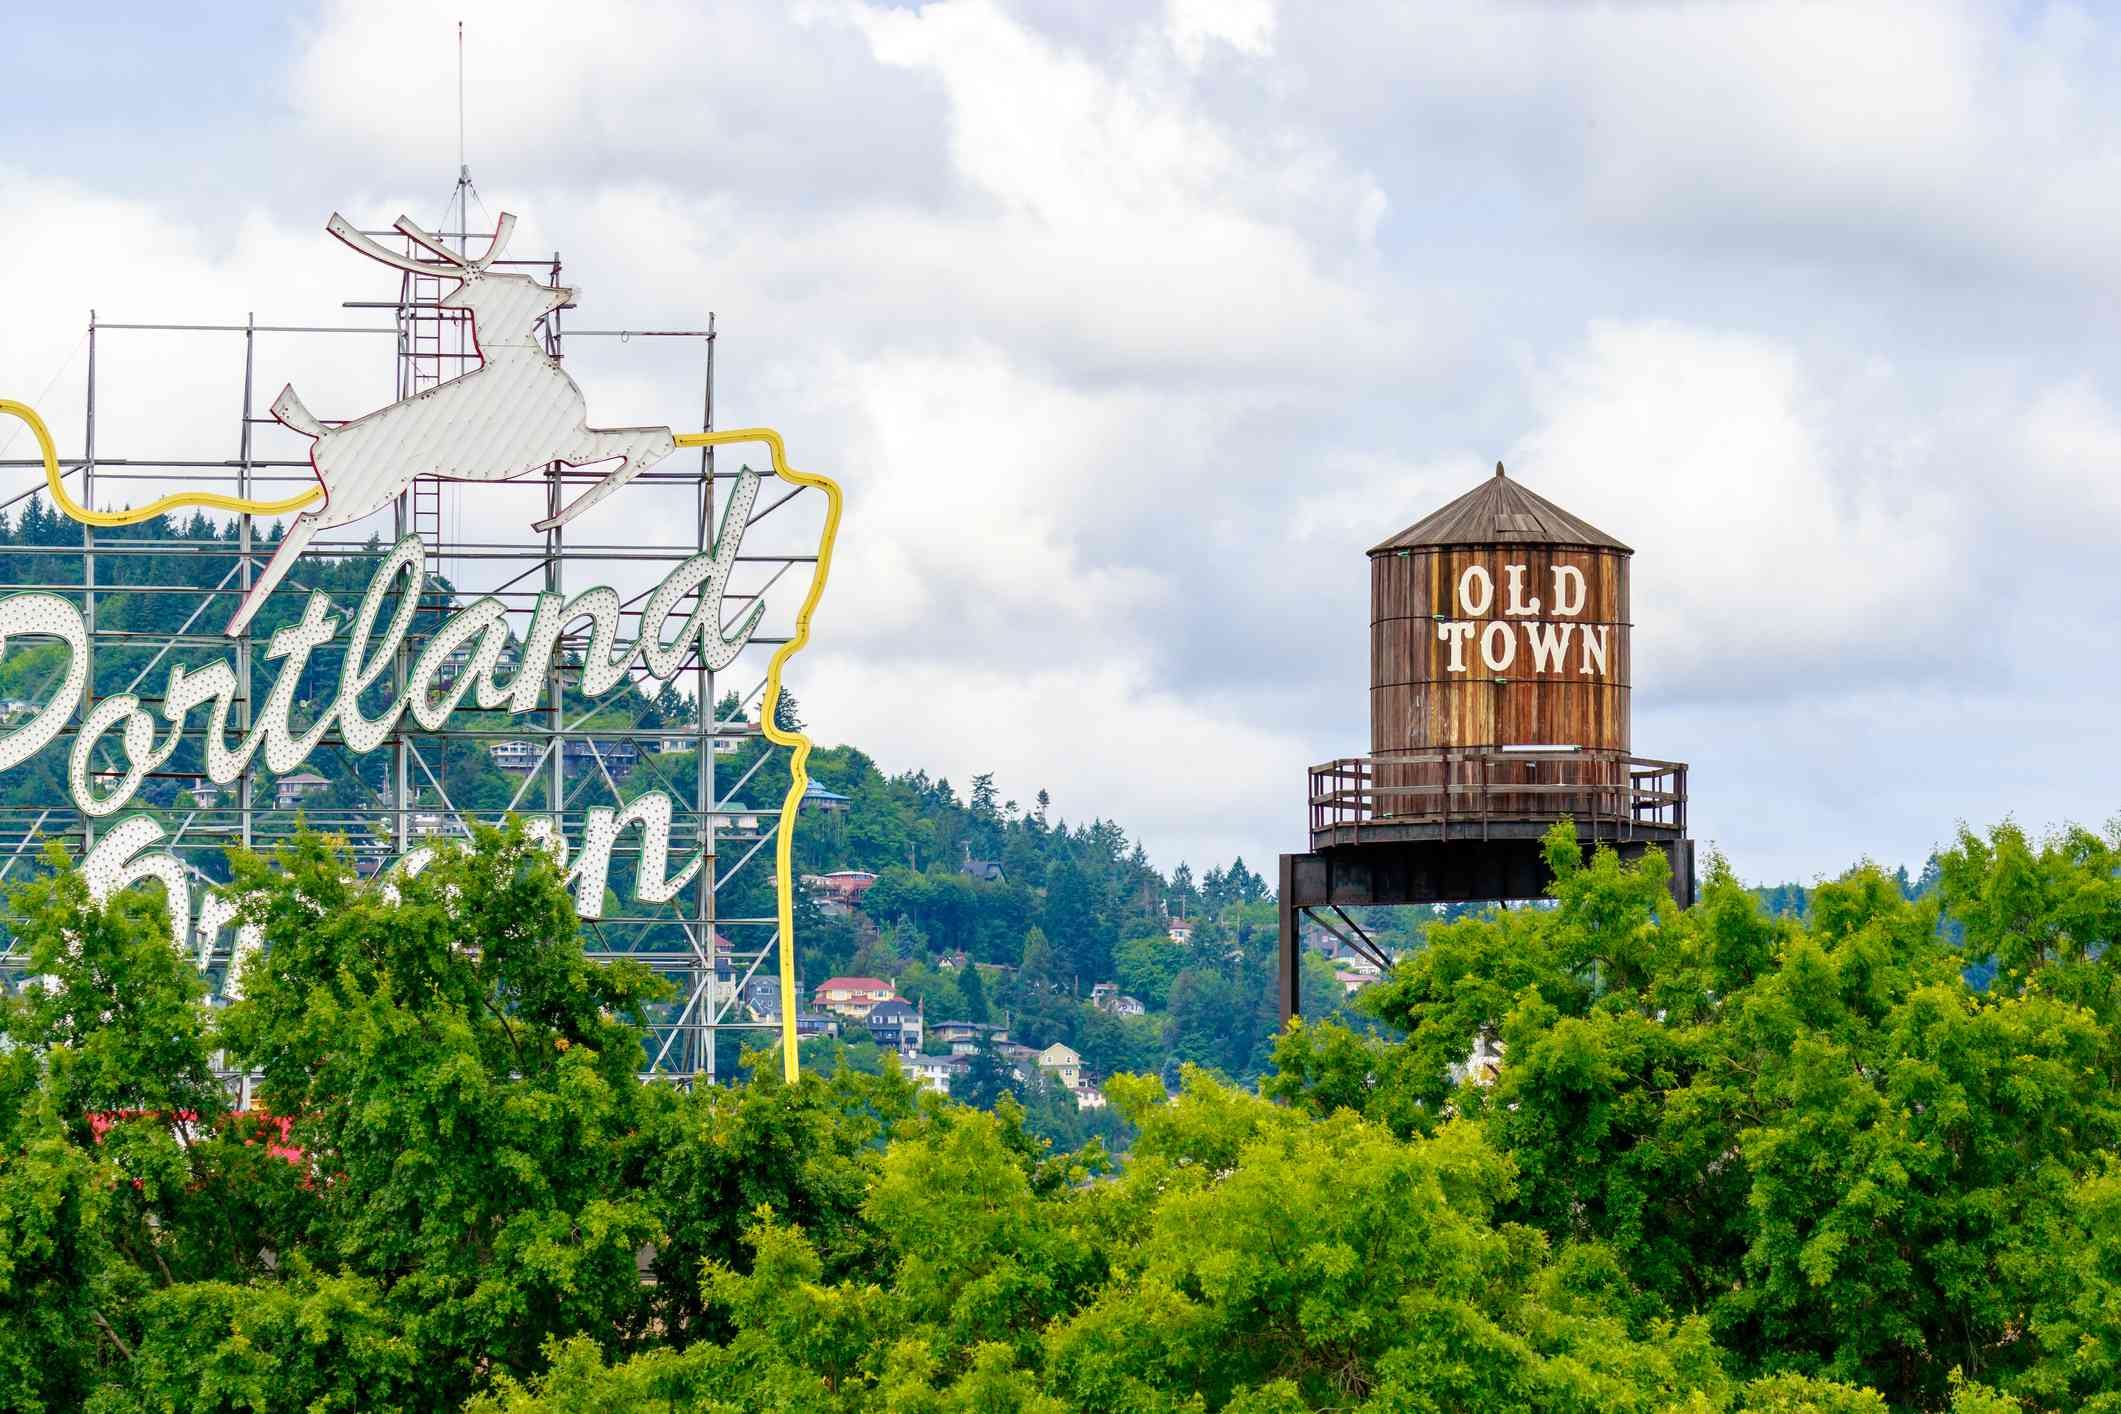 The White Stag sign, a former advertising sign, in Old Town, Portland partial covered by trees close to a wooden water tower that says